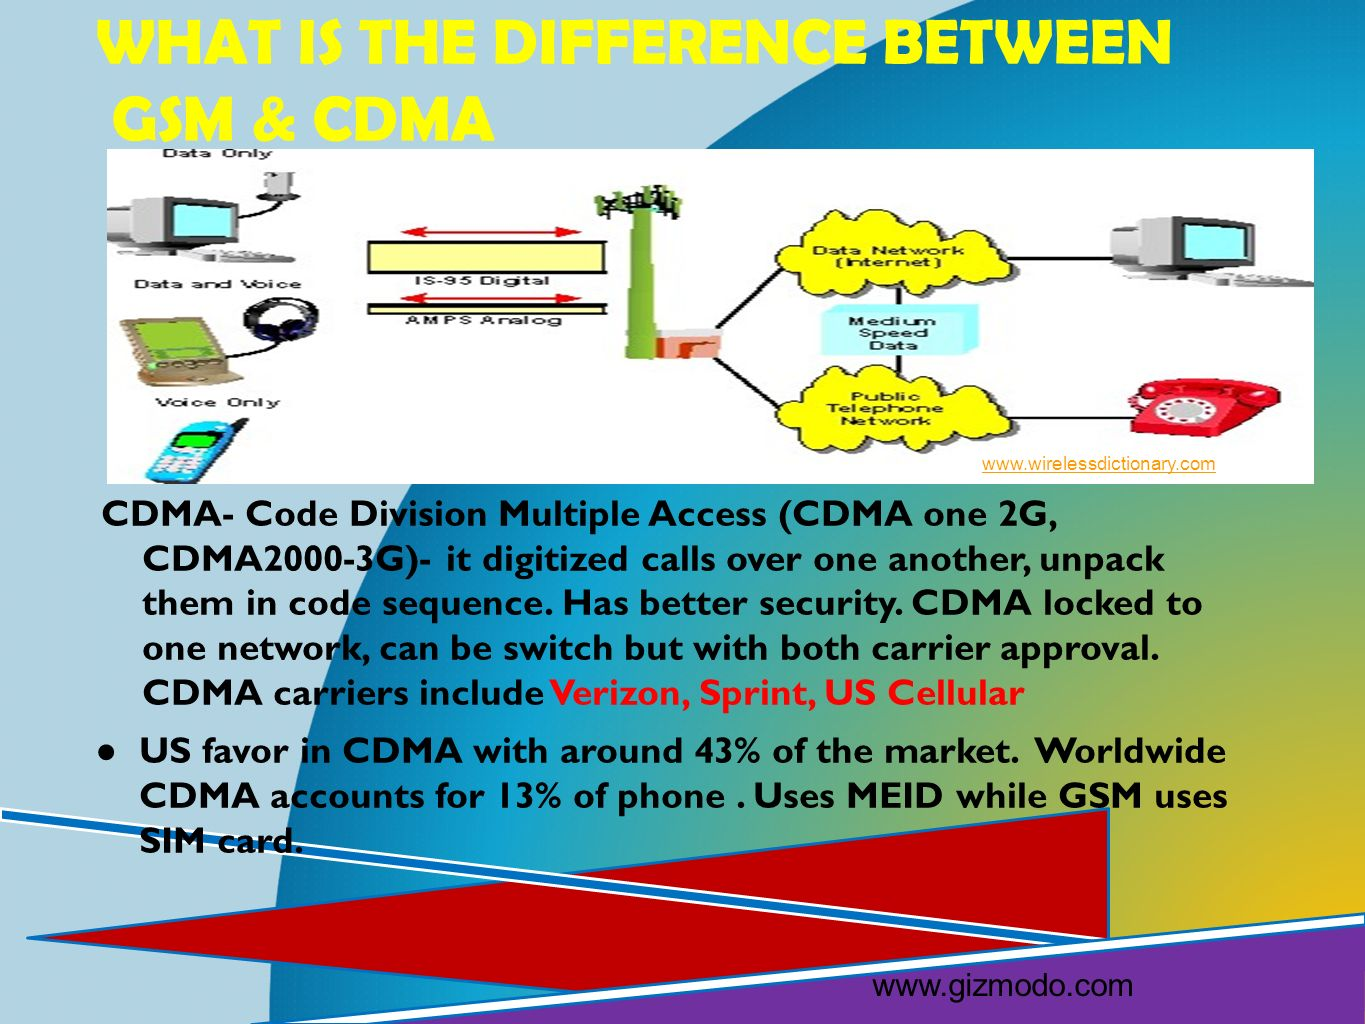 CDMA- Code Division Multiple Access (CDMA one 2G, CDMA2000-3G)- it digitized calls over one another, unpack them in code sequence. Has better security